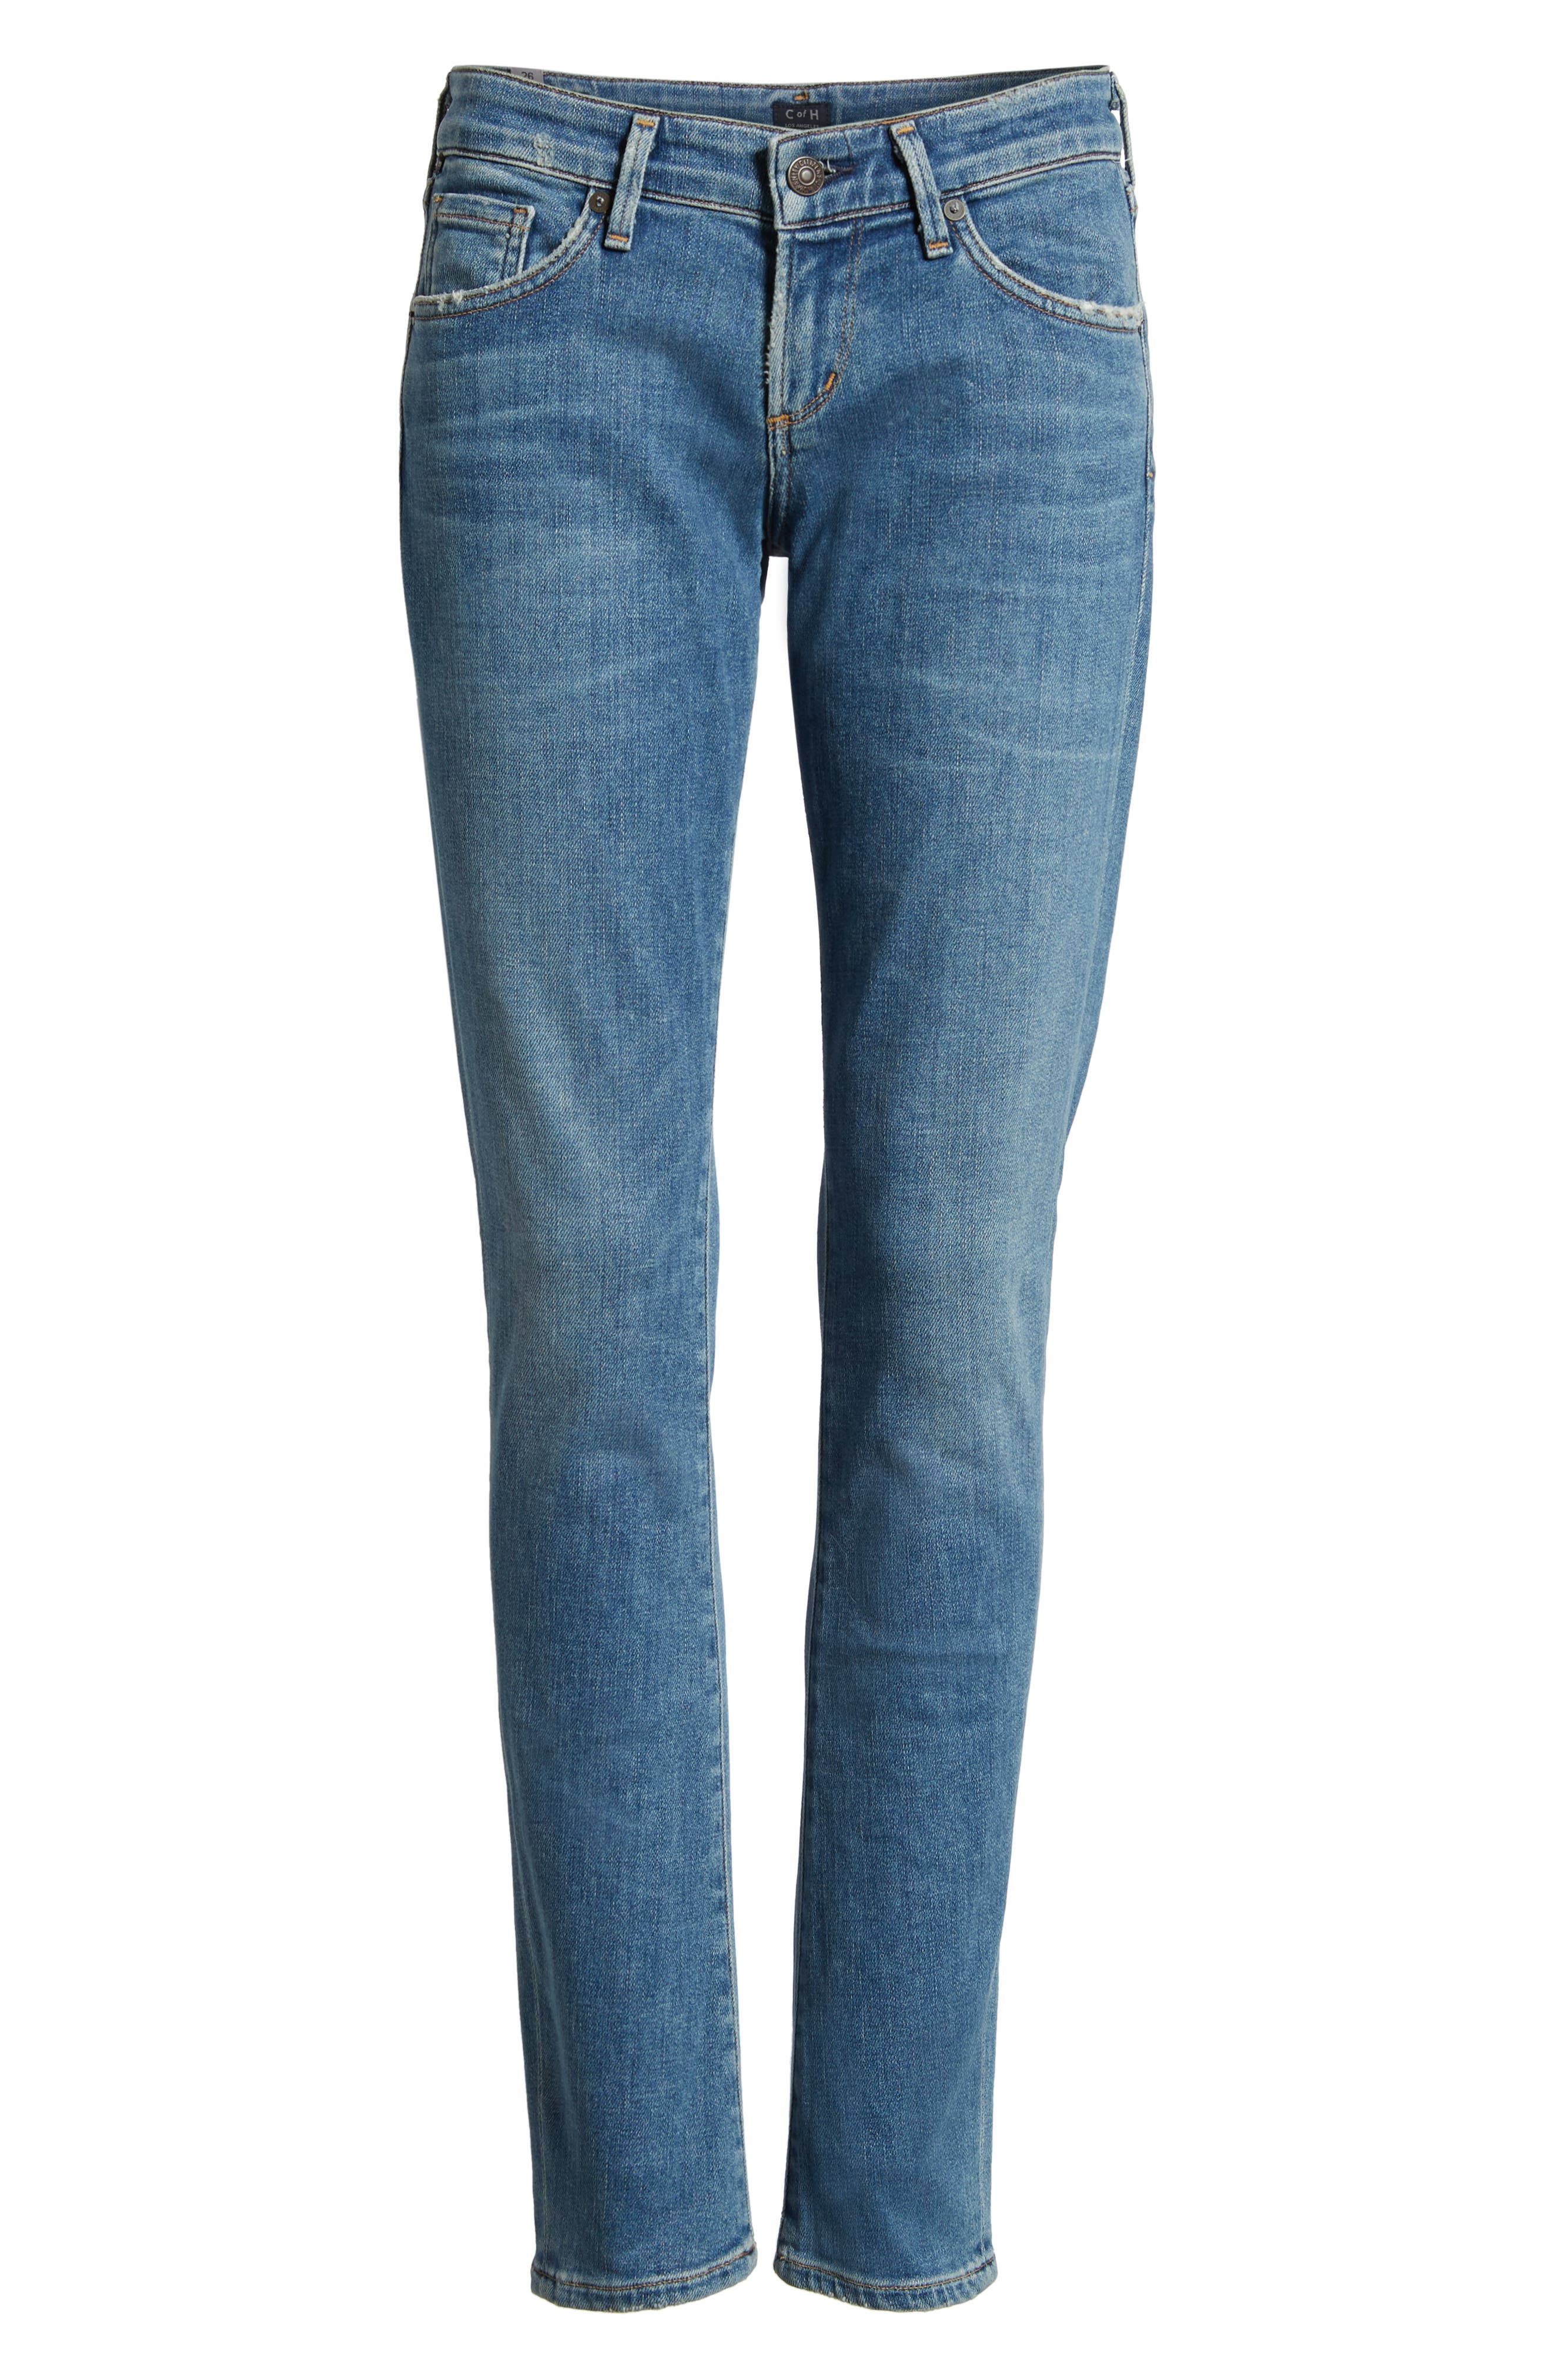 Racer Skinny Jeans,                             Alternate thumbnail 7, color,                             429